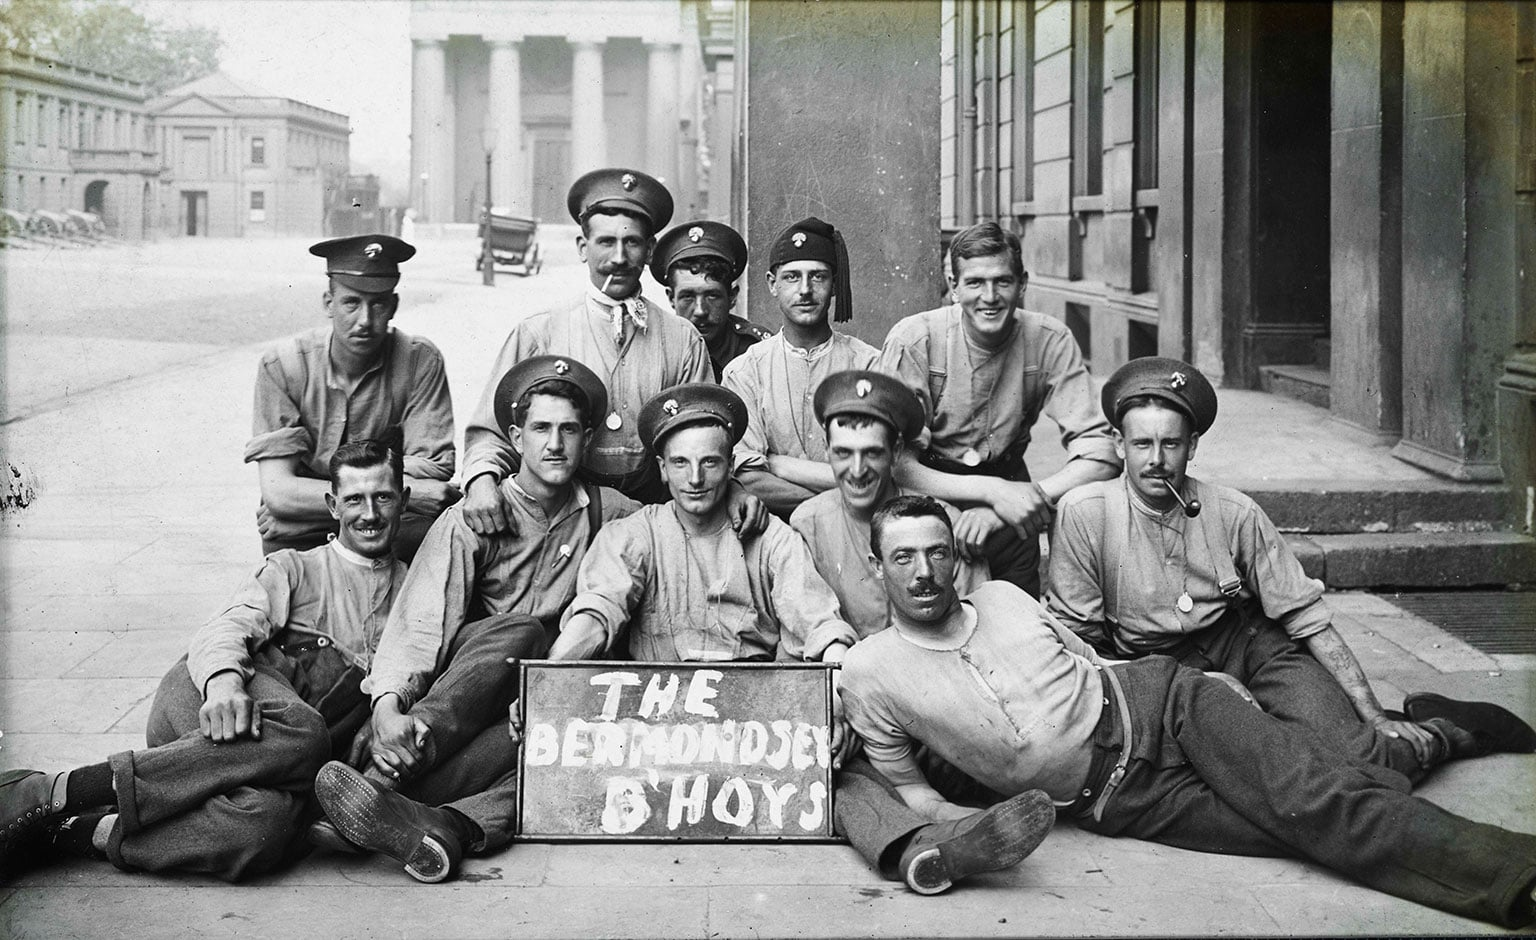 6. Soldiers and Suffragettes: The Photography of Christina Broom, Museum of London Docklands, Free entry to all - Christina Broom © Museum of London